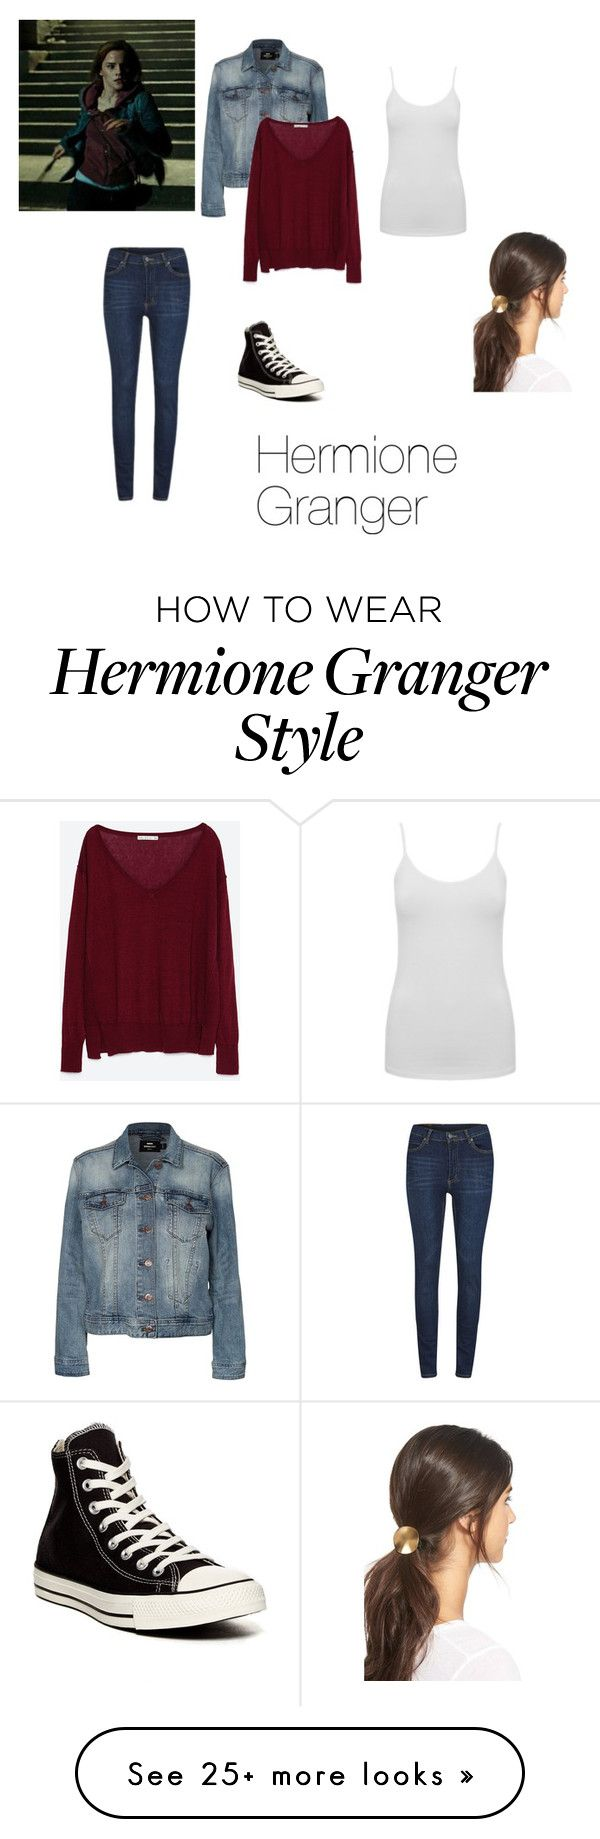 """""""Hermione Granger"""" by estexime on Polyvore featuring M&Co, Dr. Denim, Zara, Cheap Monday, Mrs. President & Co. and Converse"""